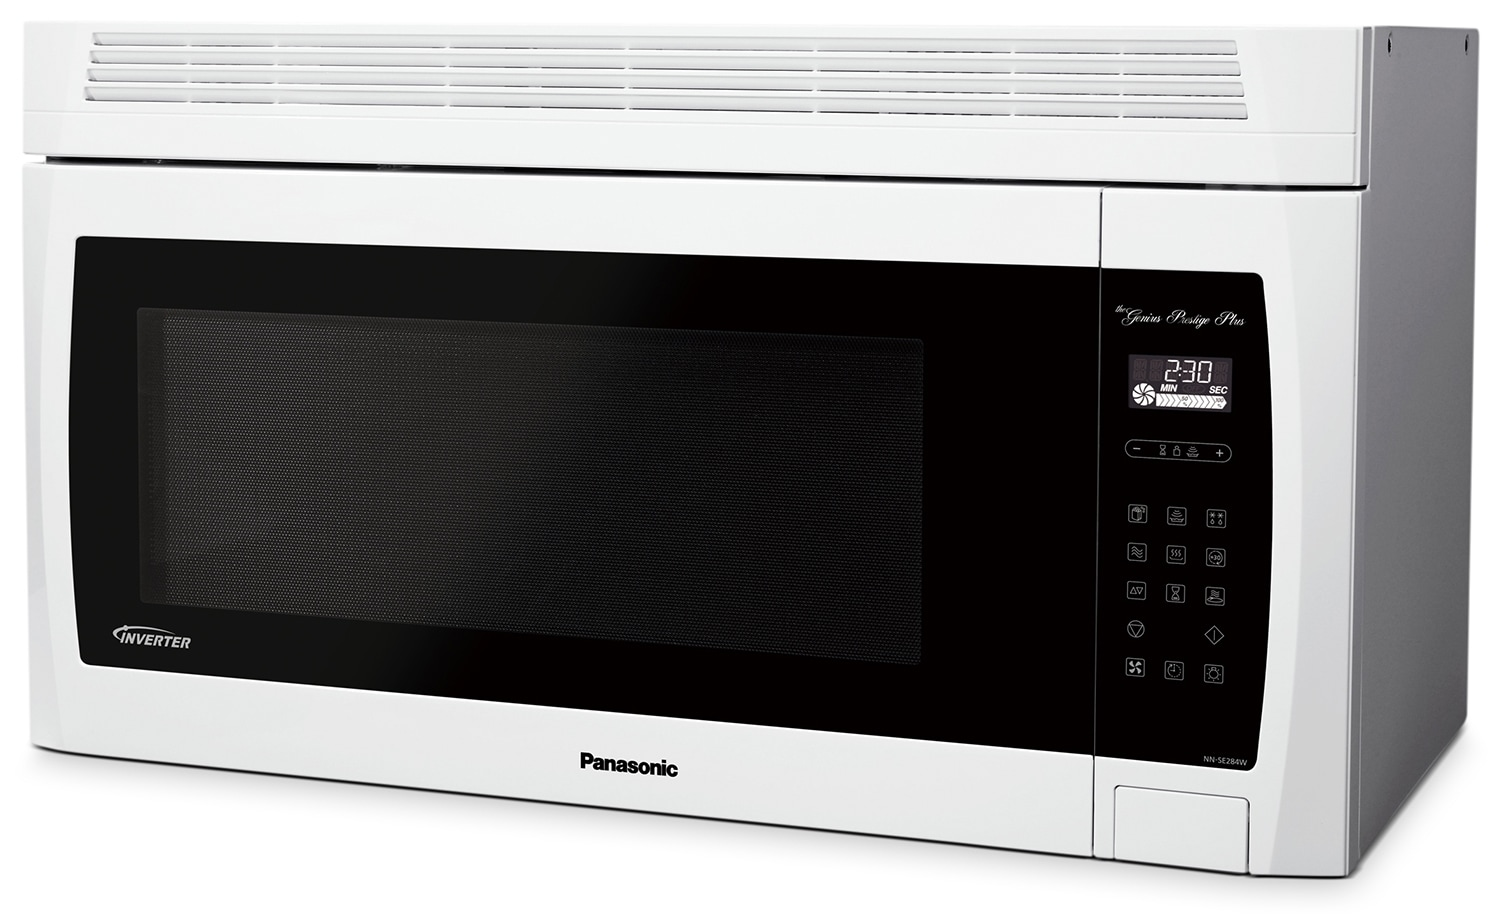 panasonic 2 0 cu ft genius prestige plus over the range microwave oven stainless steel. Black Bedroom Furniture Sets. Home Design Ideas